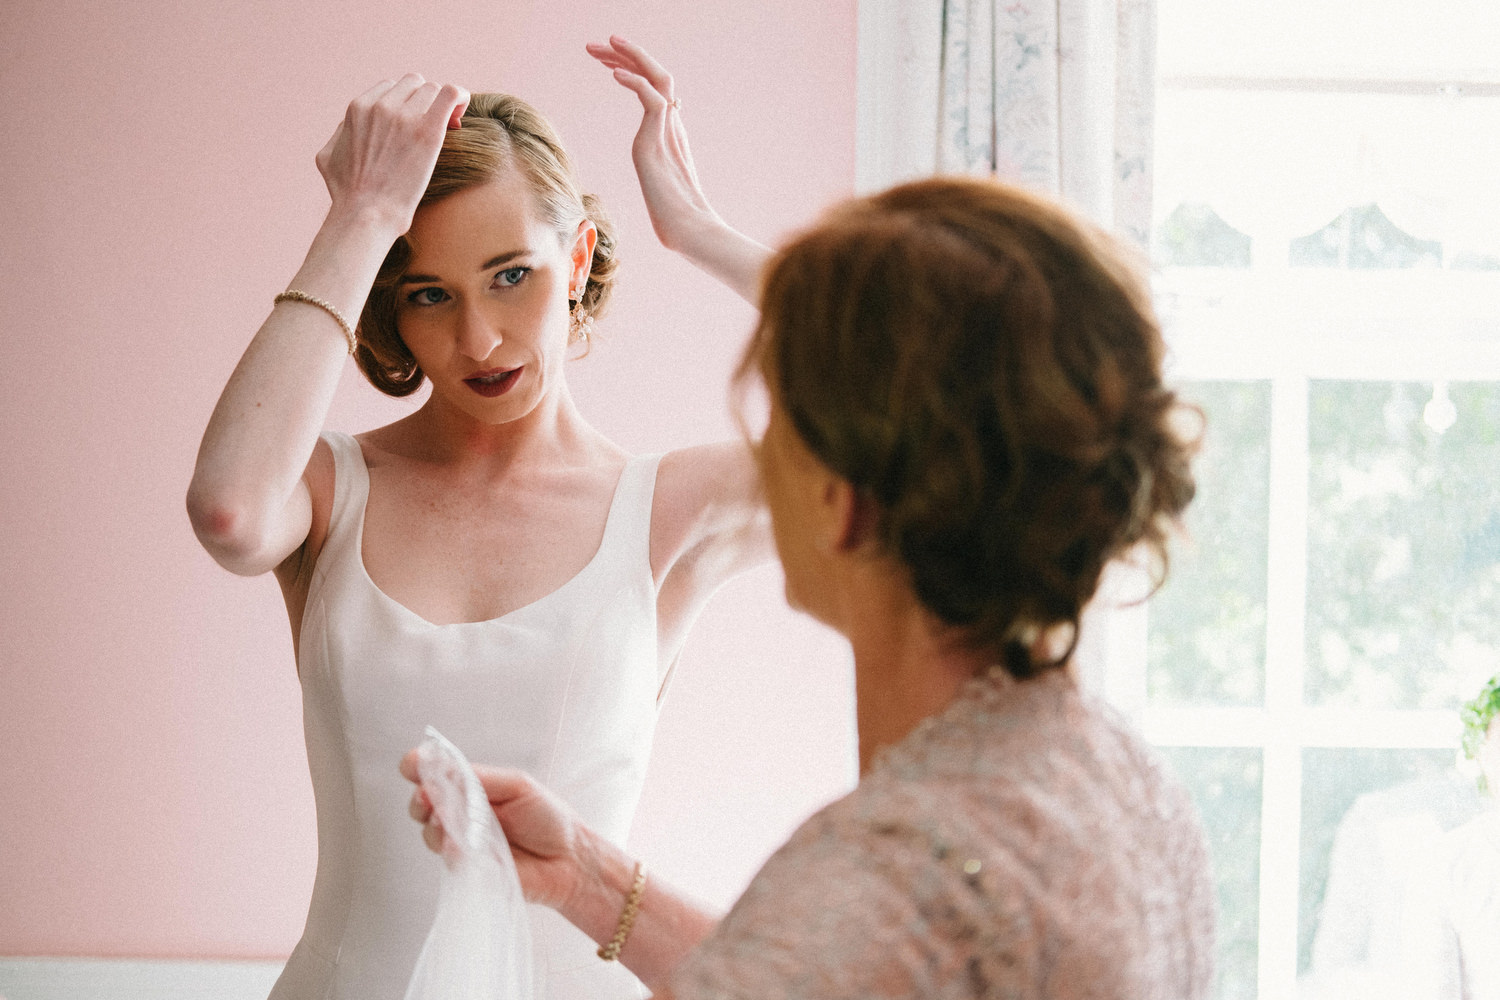 000000000000000000000085_bride_style_preparation_vintage_Hair_dress_photography_david_mcclelland_ireland_makeup_castle_hollywood_kinnity_wedding_photographer_fujifilm